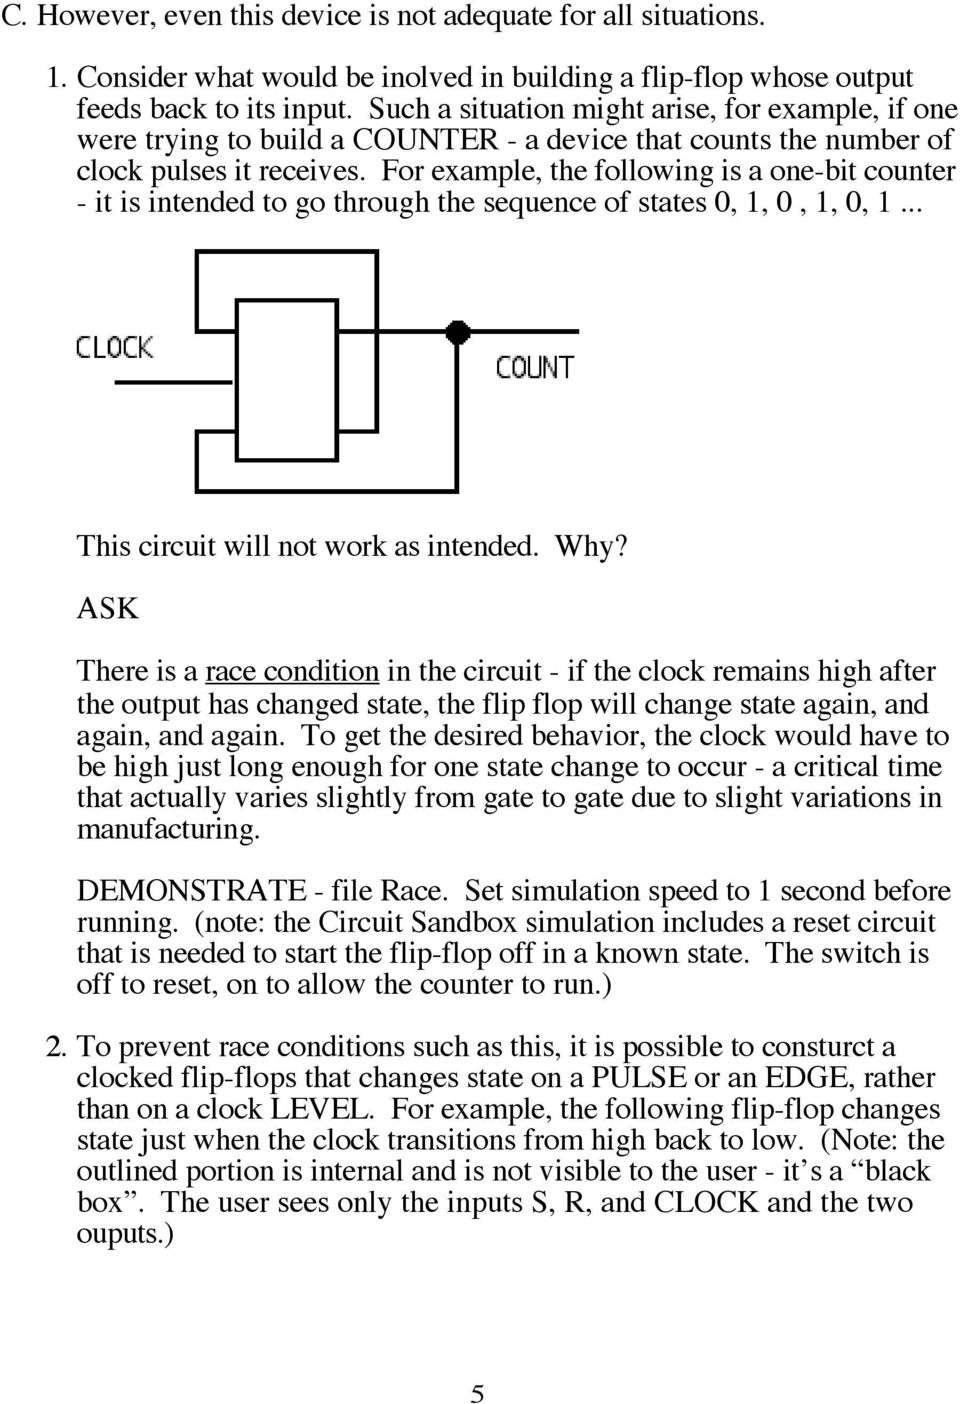 For example, the following is a one-bit counter - it is intended to go through the sequence of states 0, 1, 0, 1, 0, 1... This circuit will not work as intended. Why?